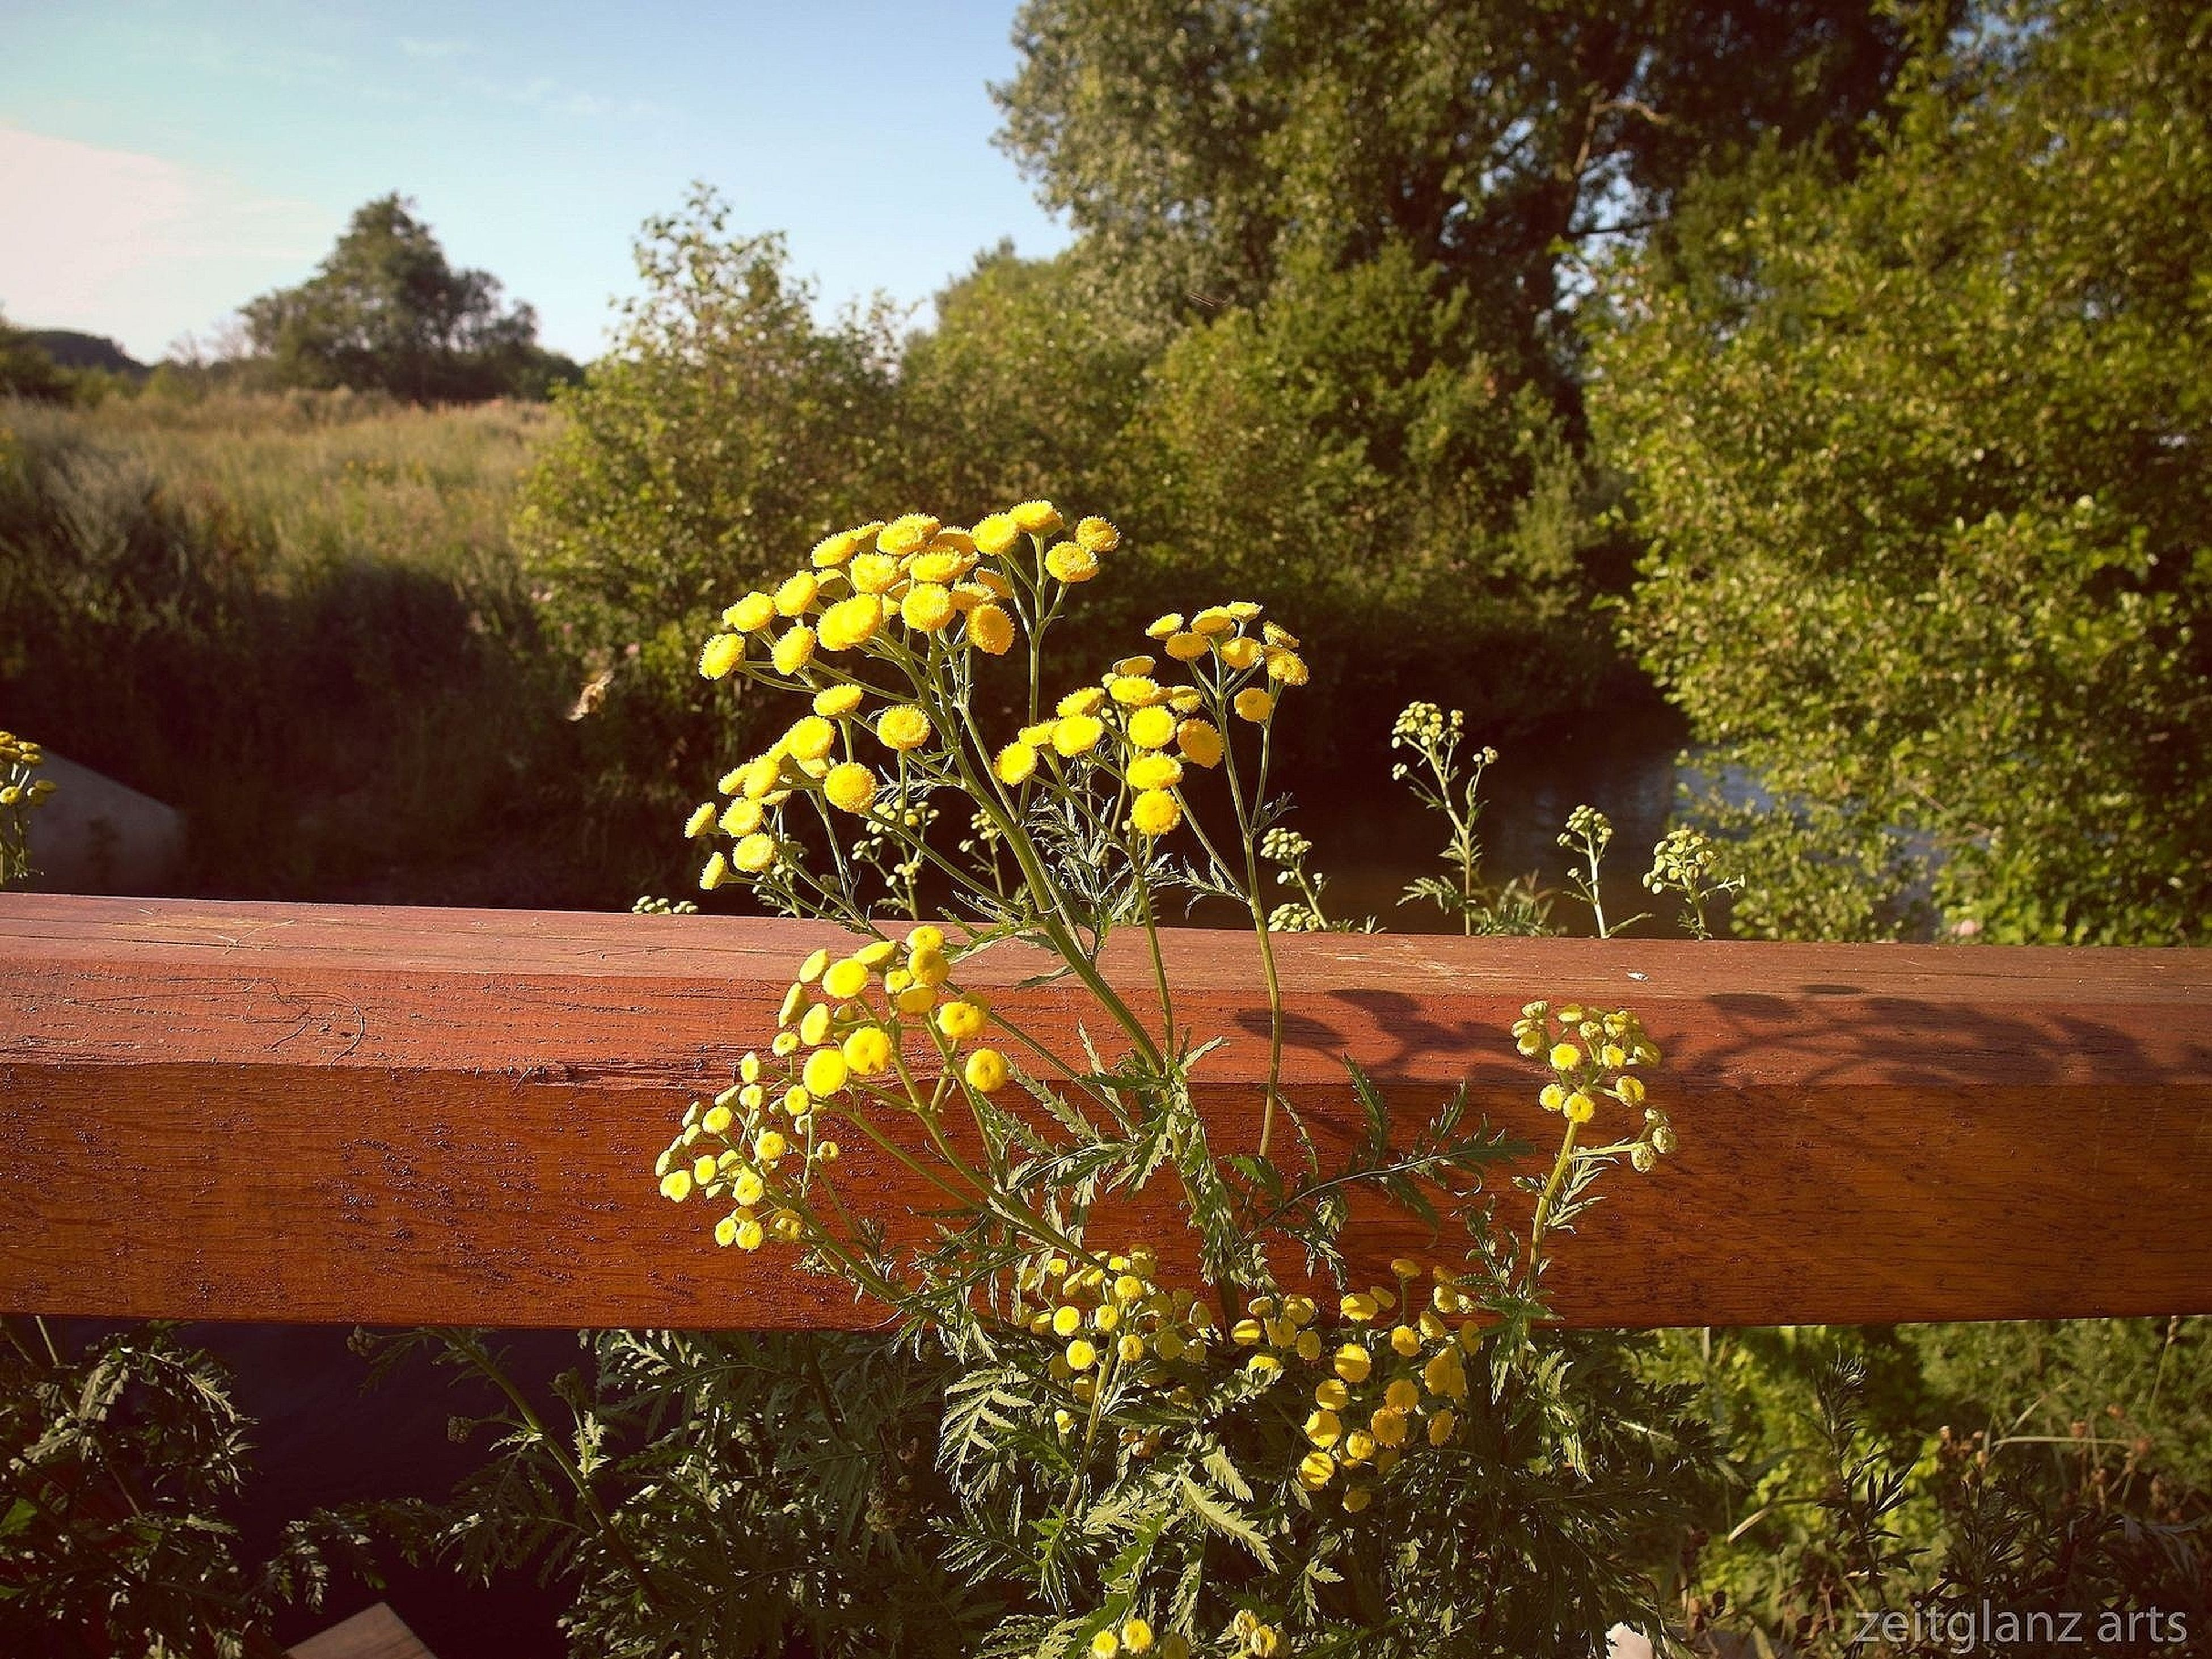 flower, growth, tree, plant, beauty in nature, freshness, nature, wood - material, yellow, fragility, tranquility, green color, park - man made space, wooden, day, outdoors, railing, fence, blooming, no people